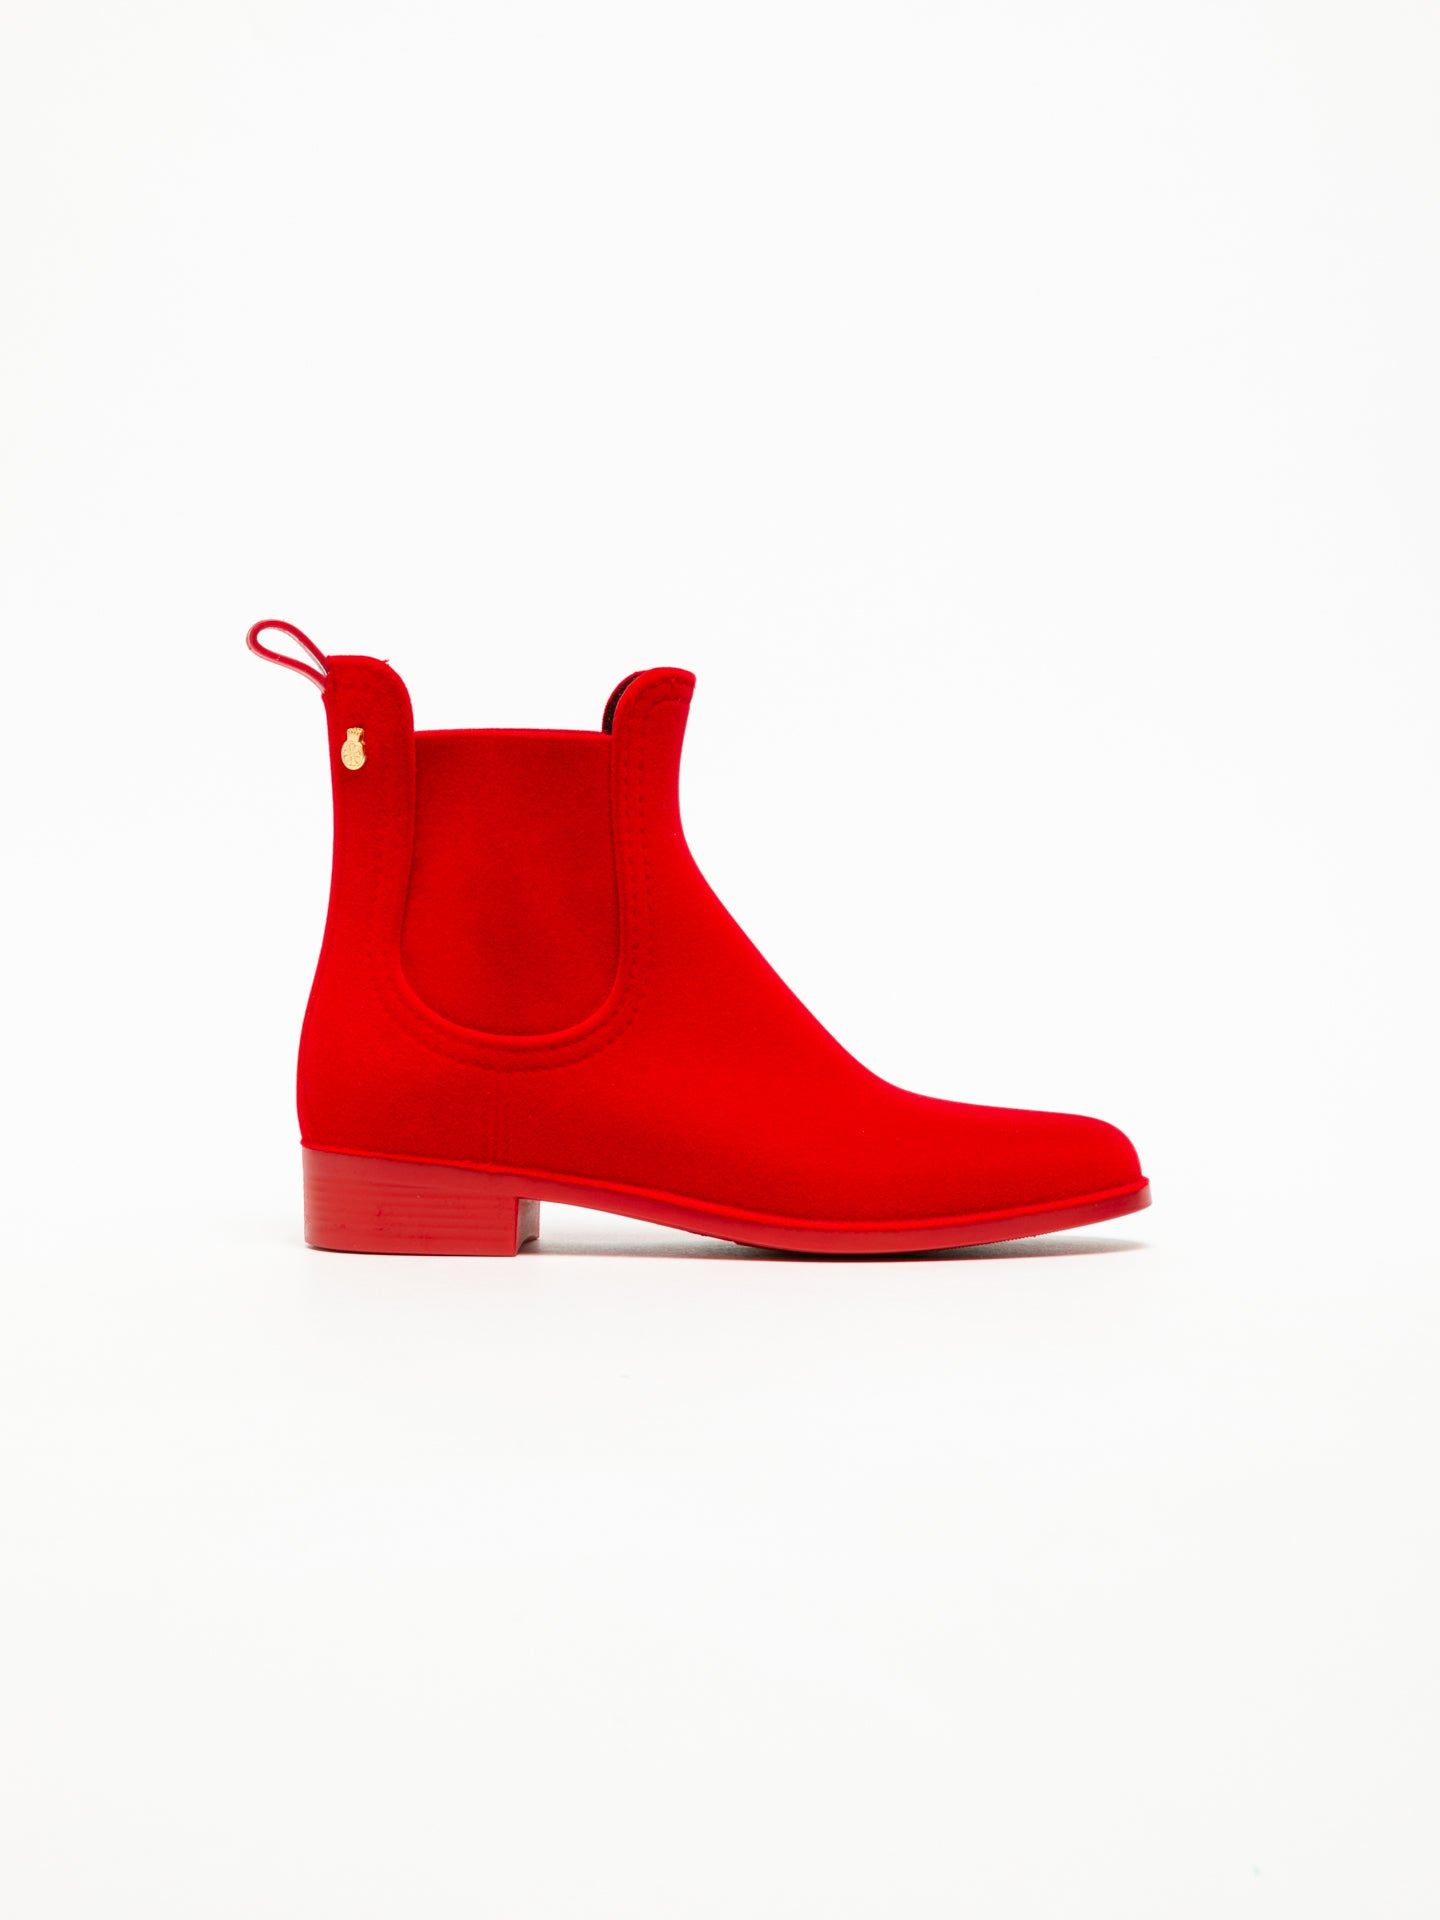 Lemon Jelly Stiefeletten im Chelsea-Stil in Rot